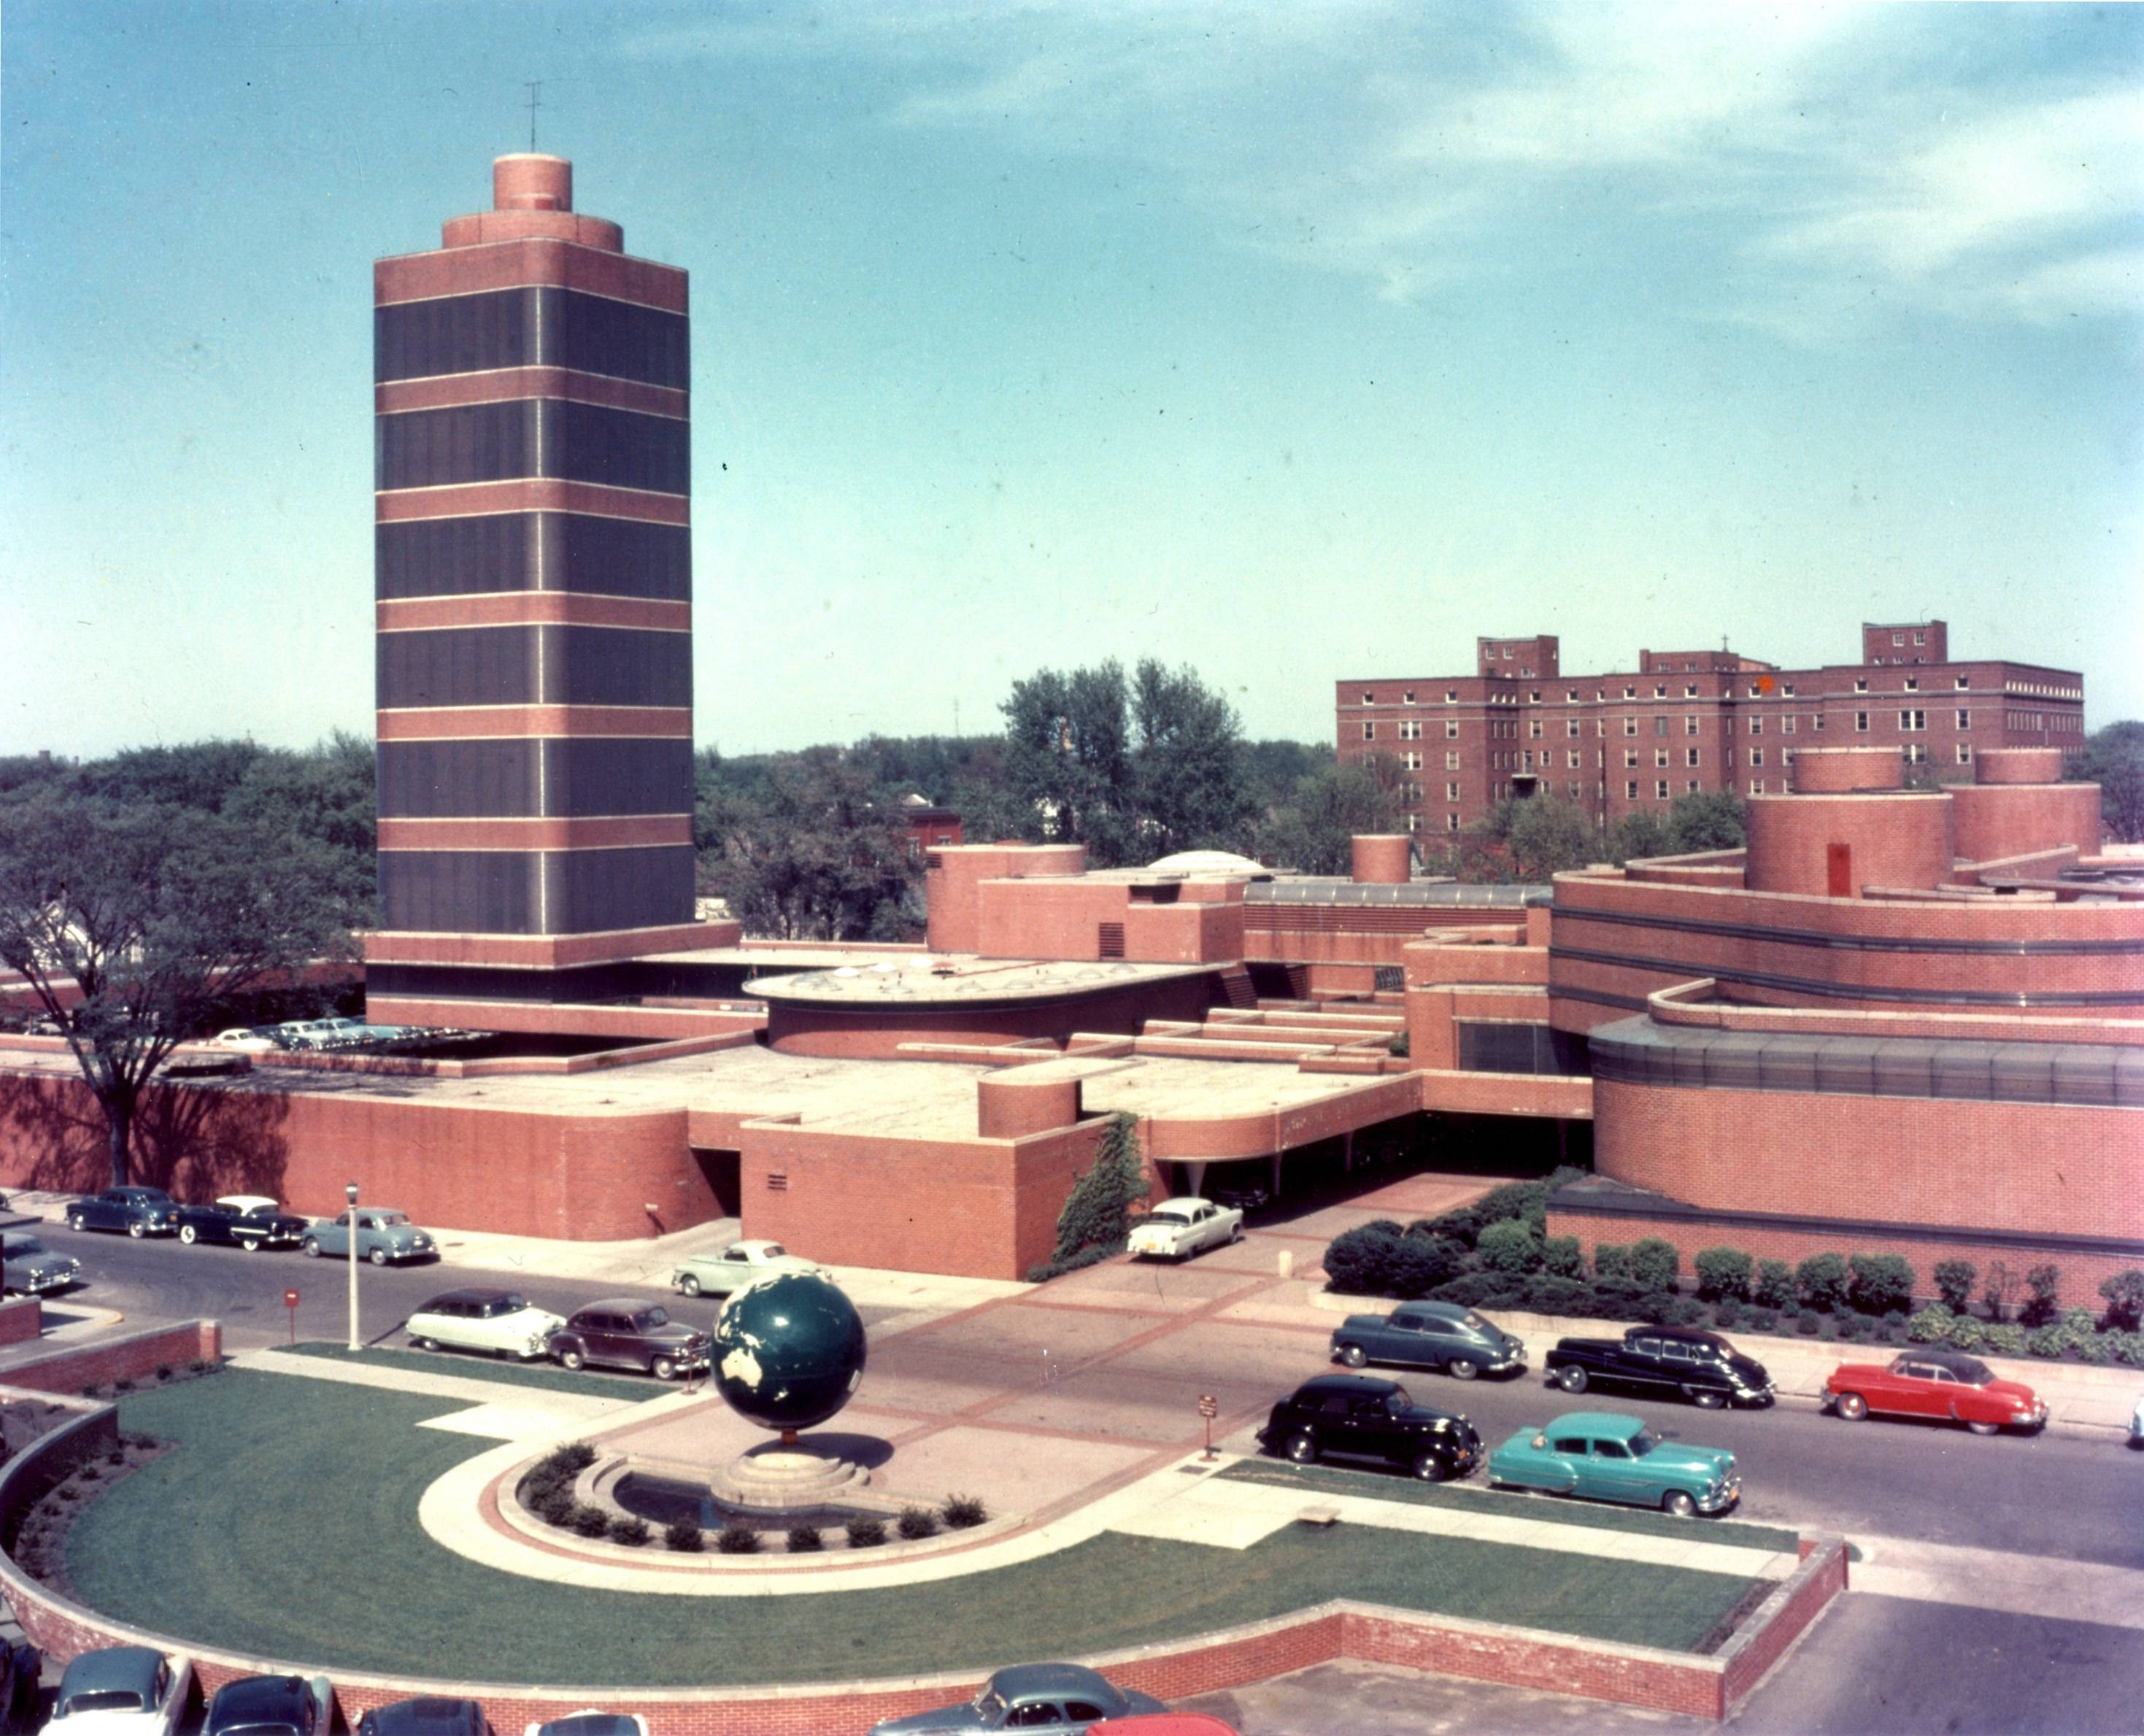 This photo from 1955 provides an aerial view of the SC Johnson Research Tower designed by Frank Lloyd Wright in Racine, Wis.